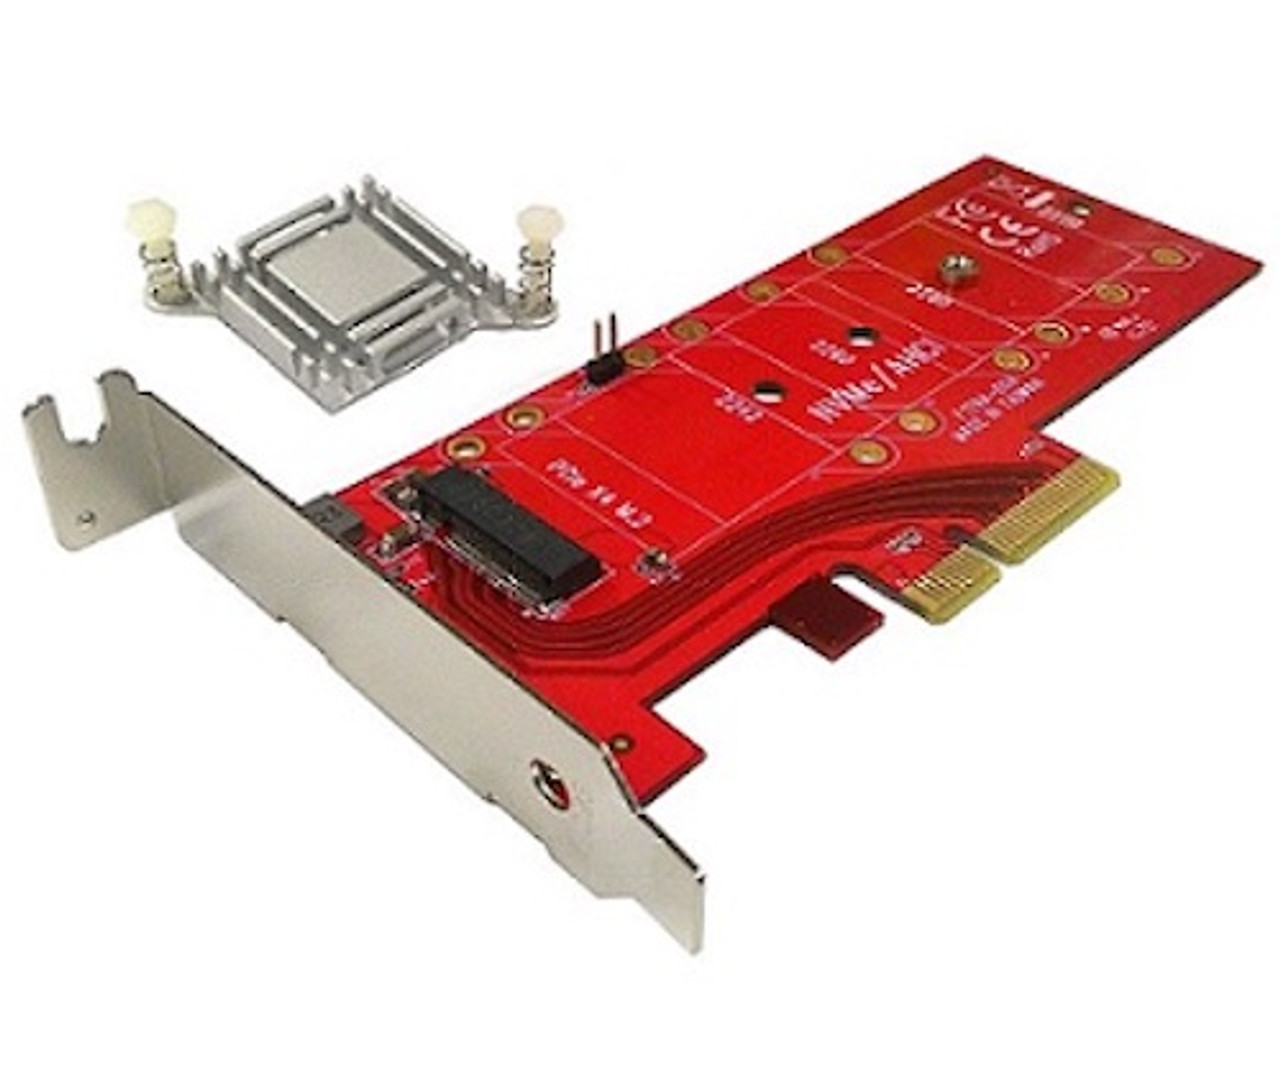 Lycom DT-129A, PCIe 3.0 x4 Carrier Adapter for M.2 NVMe 110mm High Power SSD